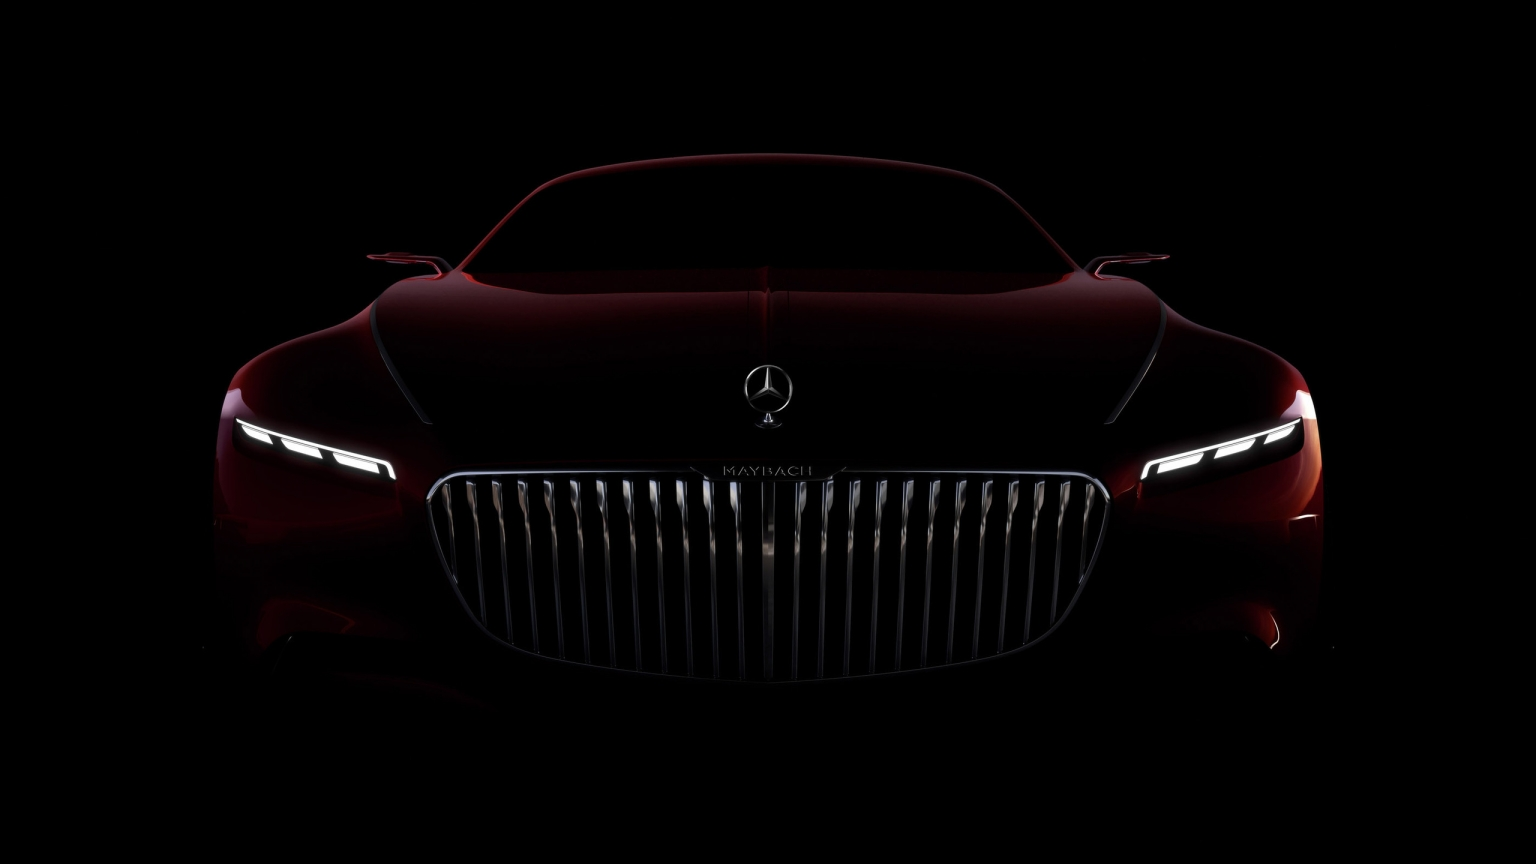 Amazing Vision Mercedes Maybach 6 2016 for 1536 x 864 HDTV resolution